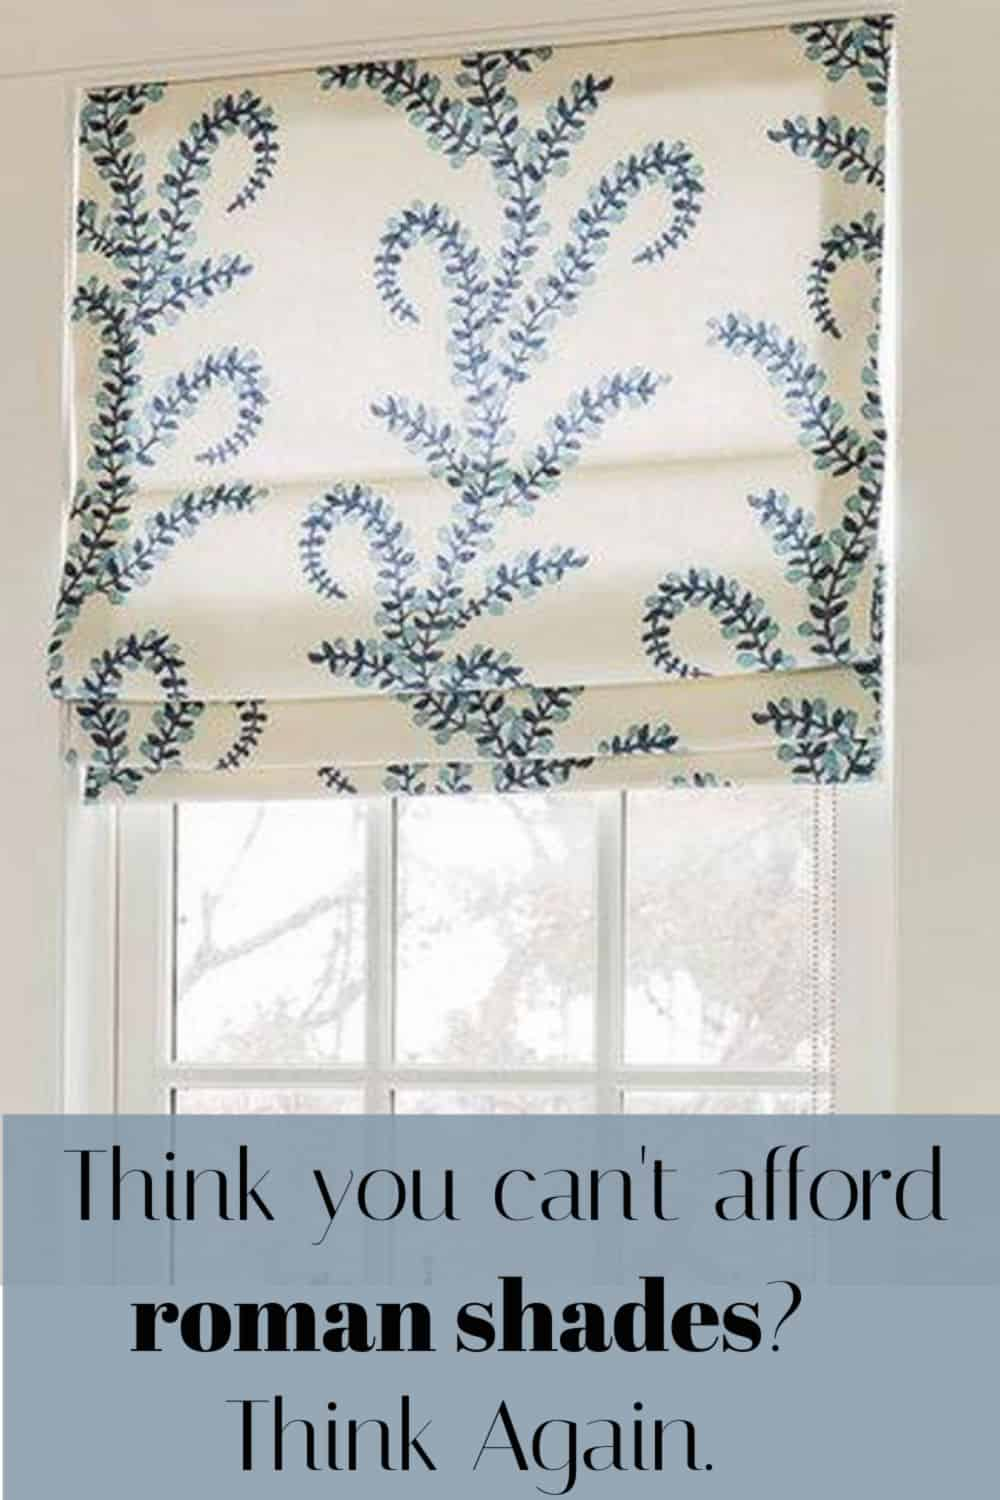 How to get roman blinds on a budget